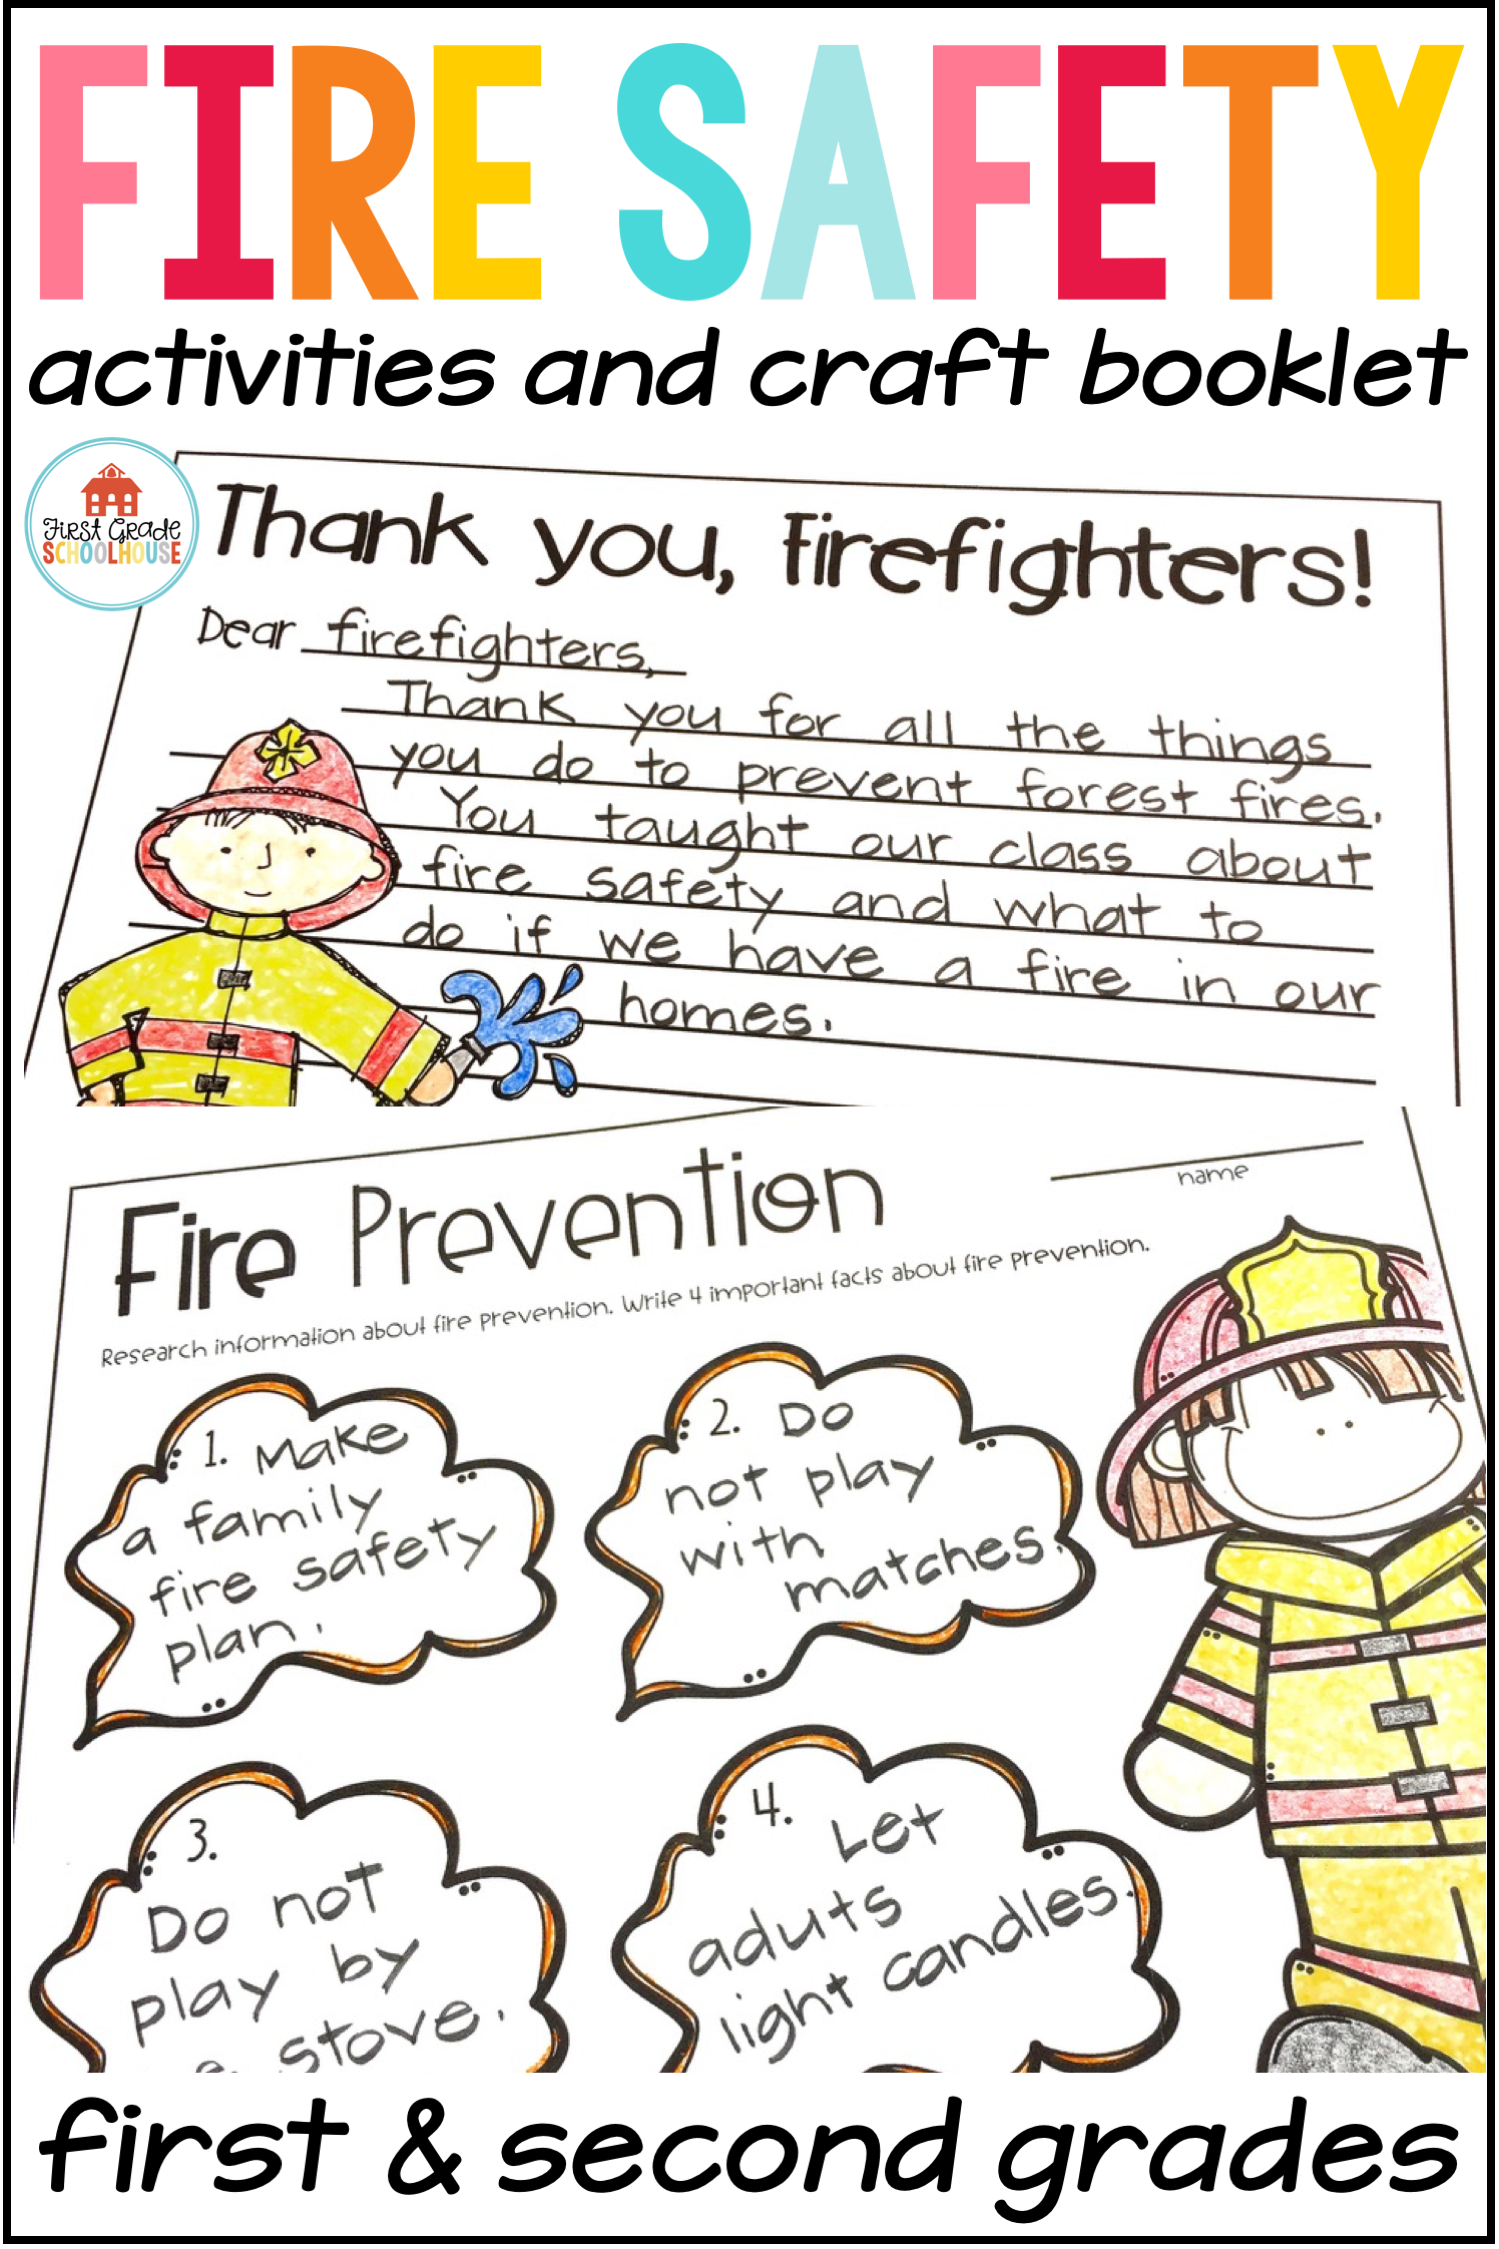 Learning About Fire Safety And Prevention Is Fun With These Activities That Are Perfect For Fire Prevent Fire Safety Activities Fire Safety Booklet Fire Safety [ 2249 x 1499 Pixel ]